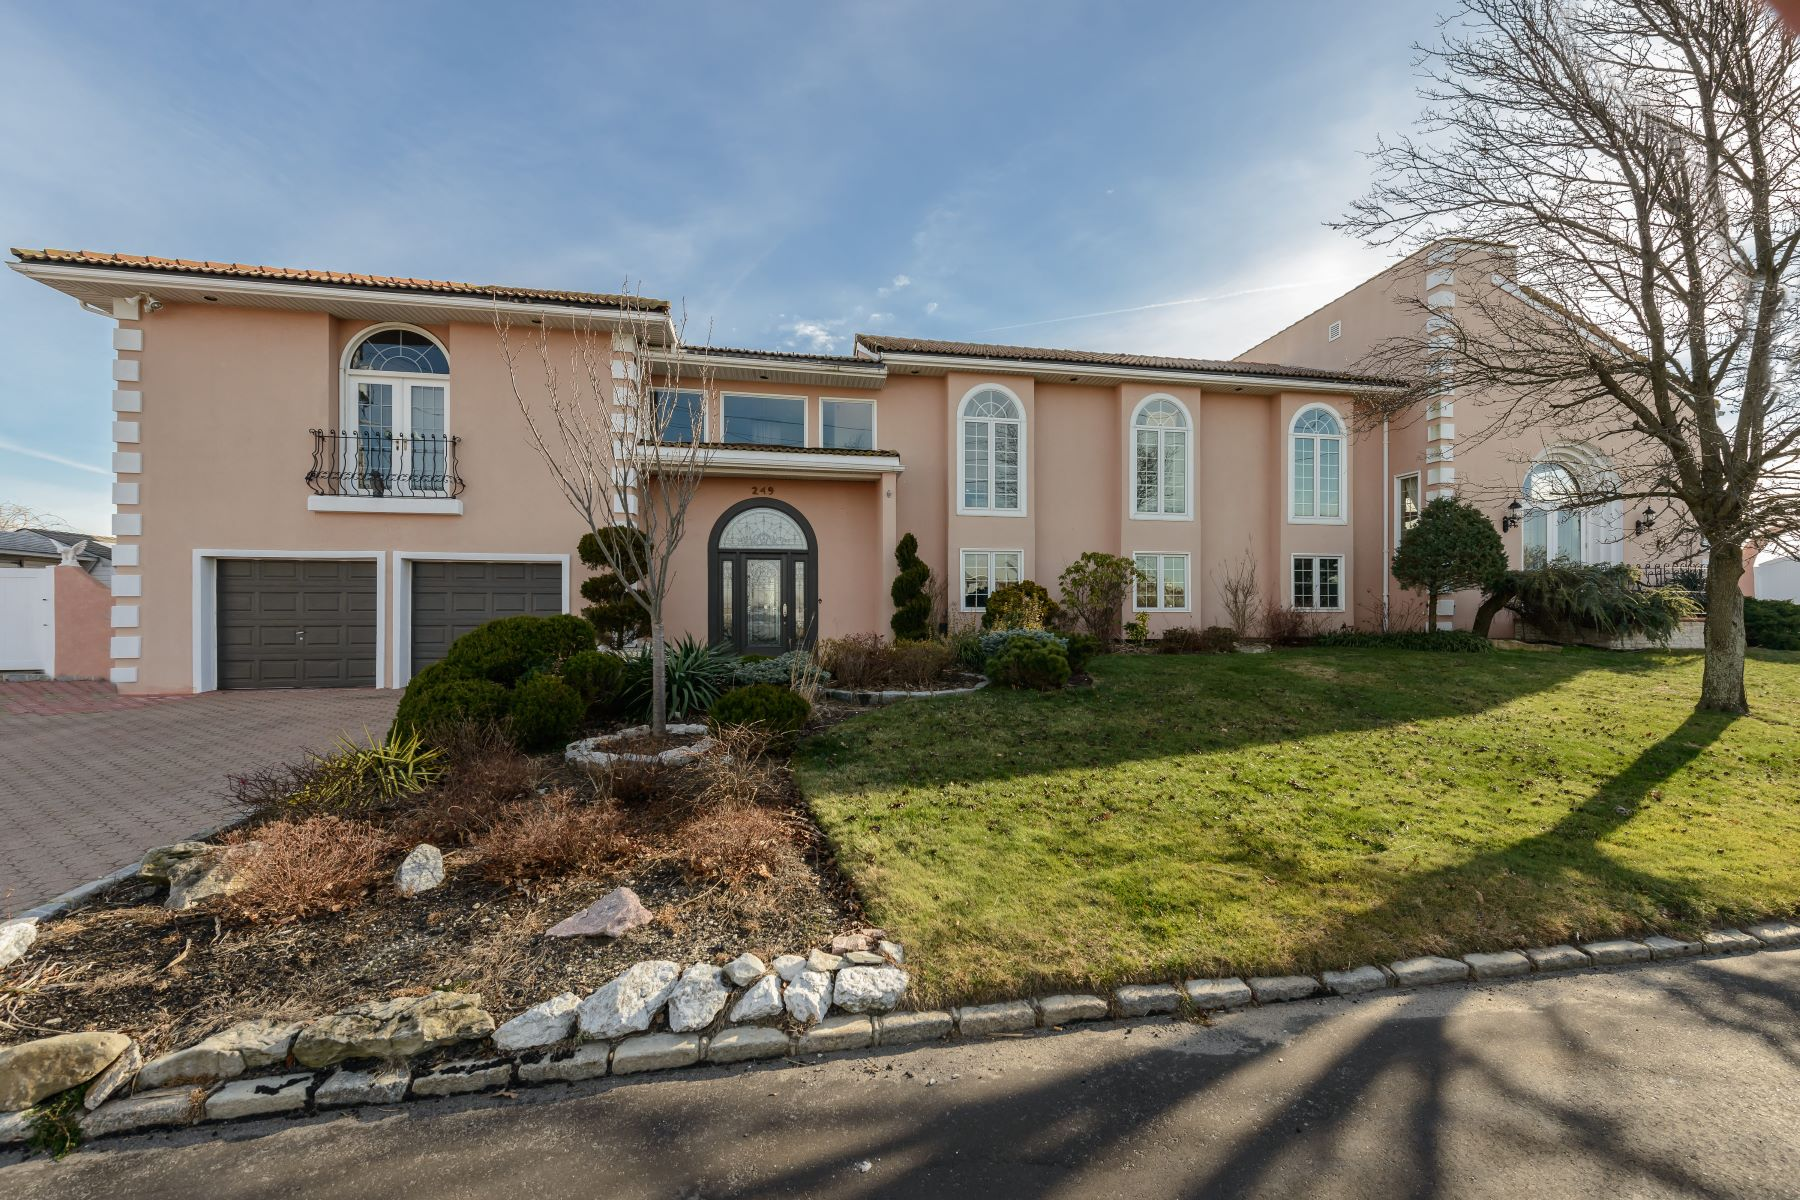 Single Family Home for Sale at 249 Eaton Ln , West Islip, NY 11795 West Islip, New York, 11795 United States